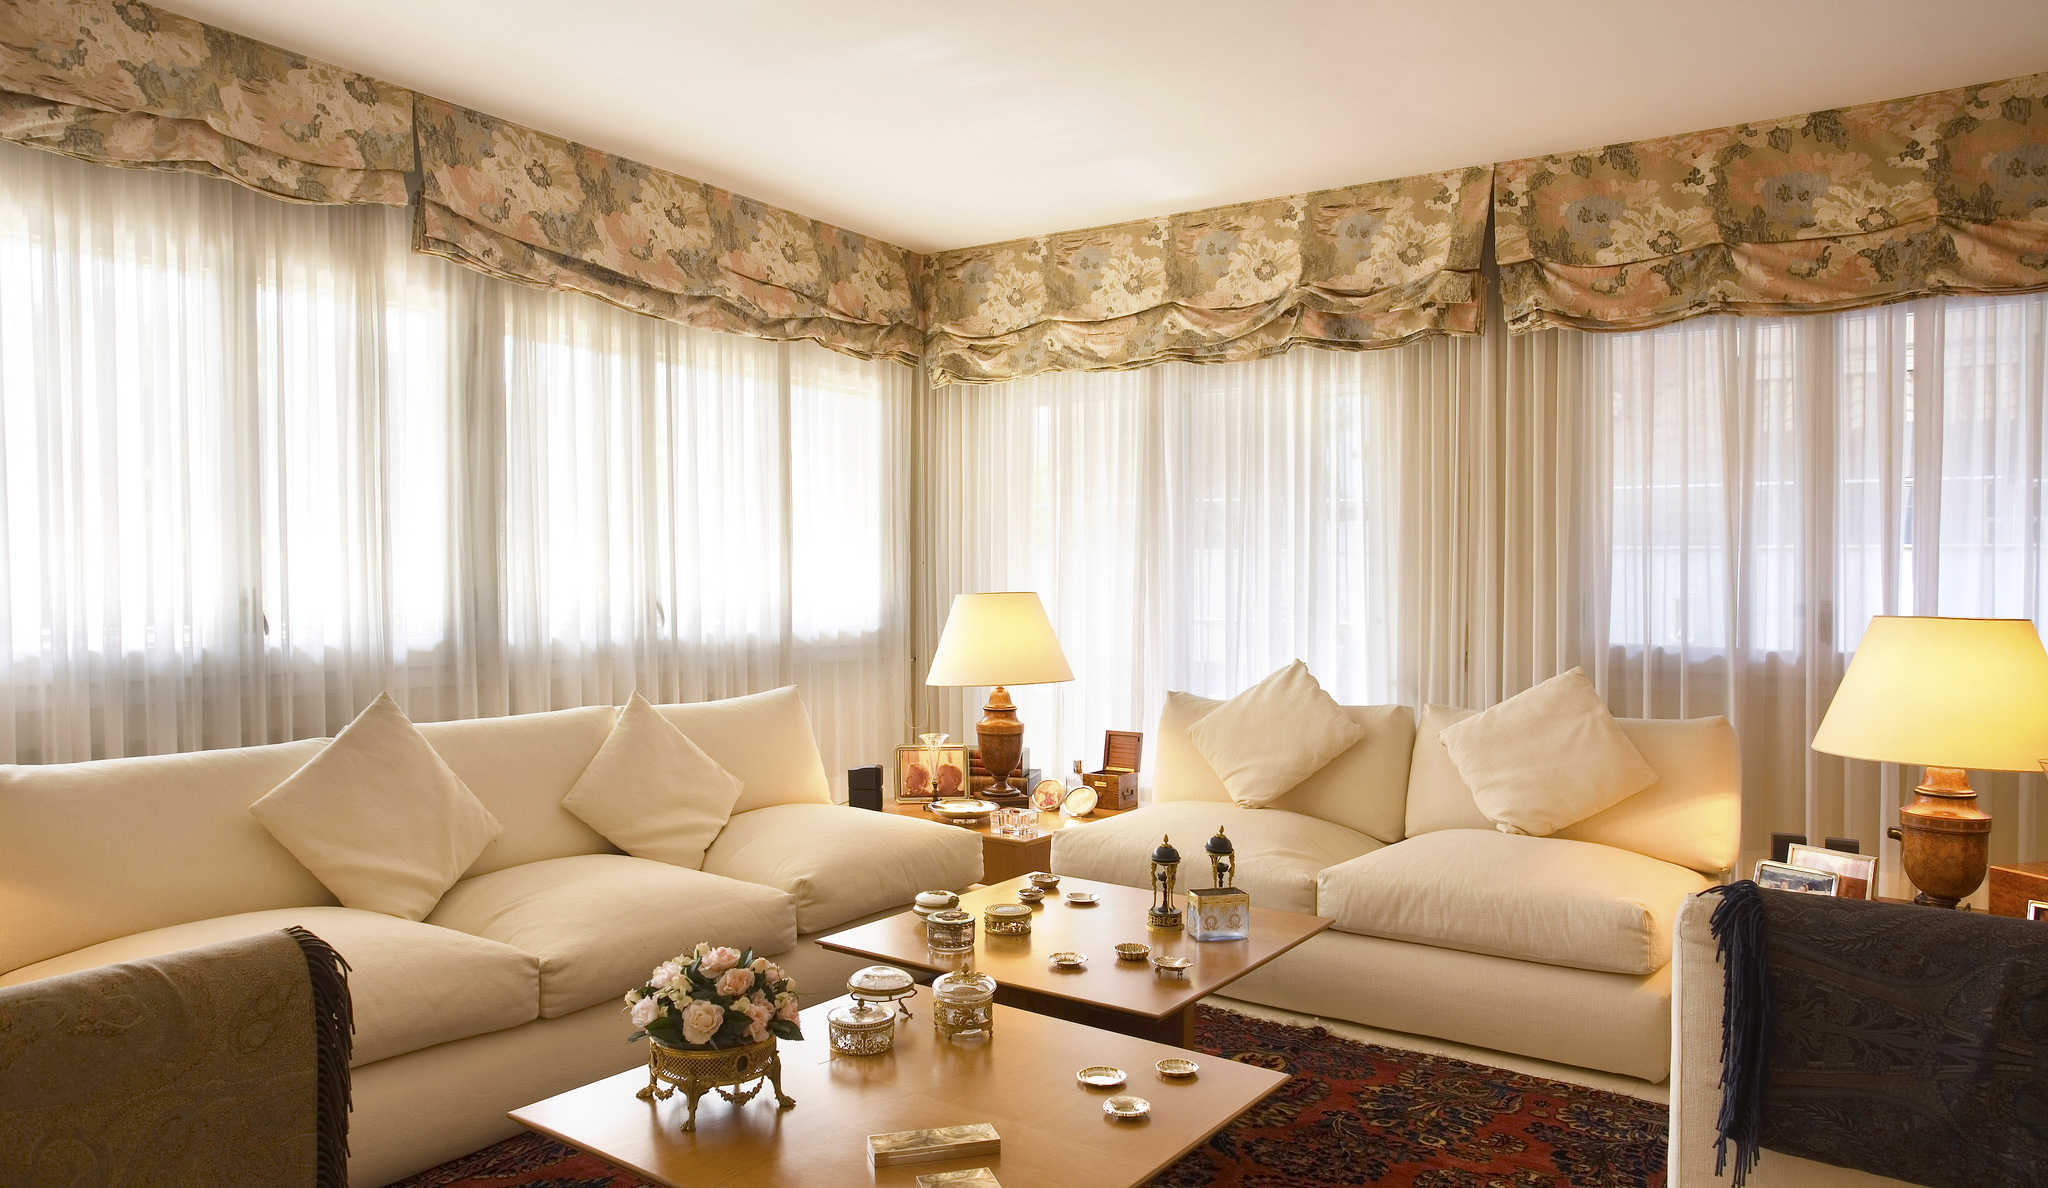 Tips for Choosing Living Room Curtain | Roy Home Design on Living Room Curtains Ideas  id=45002